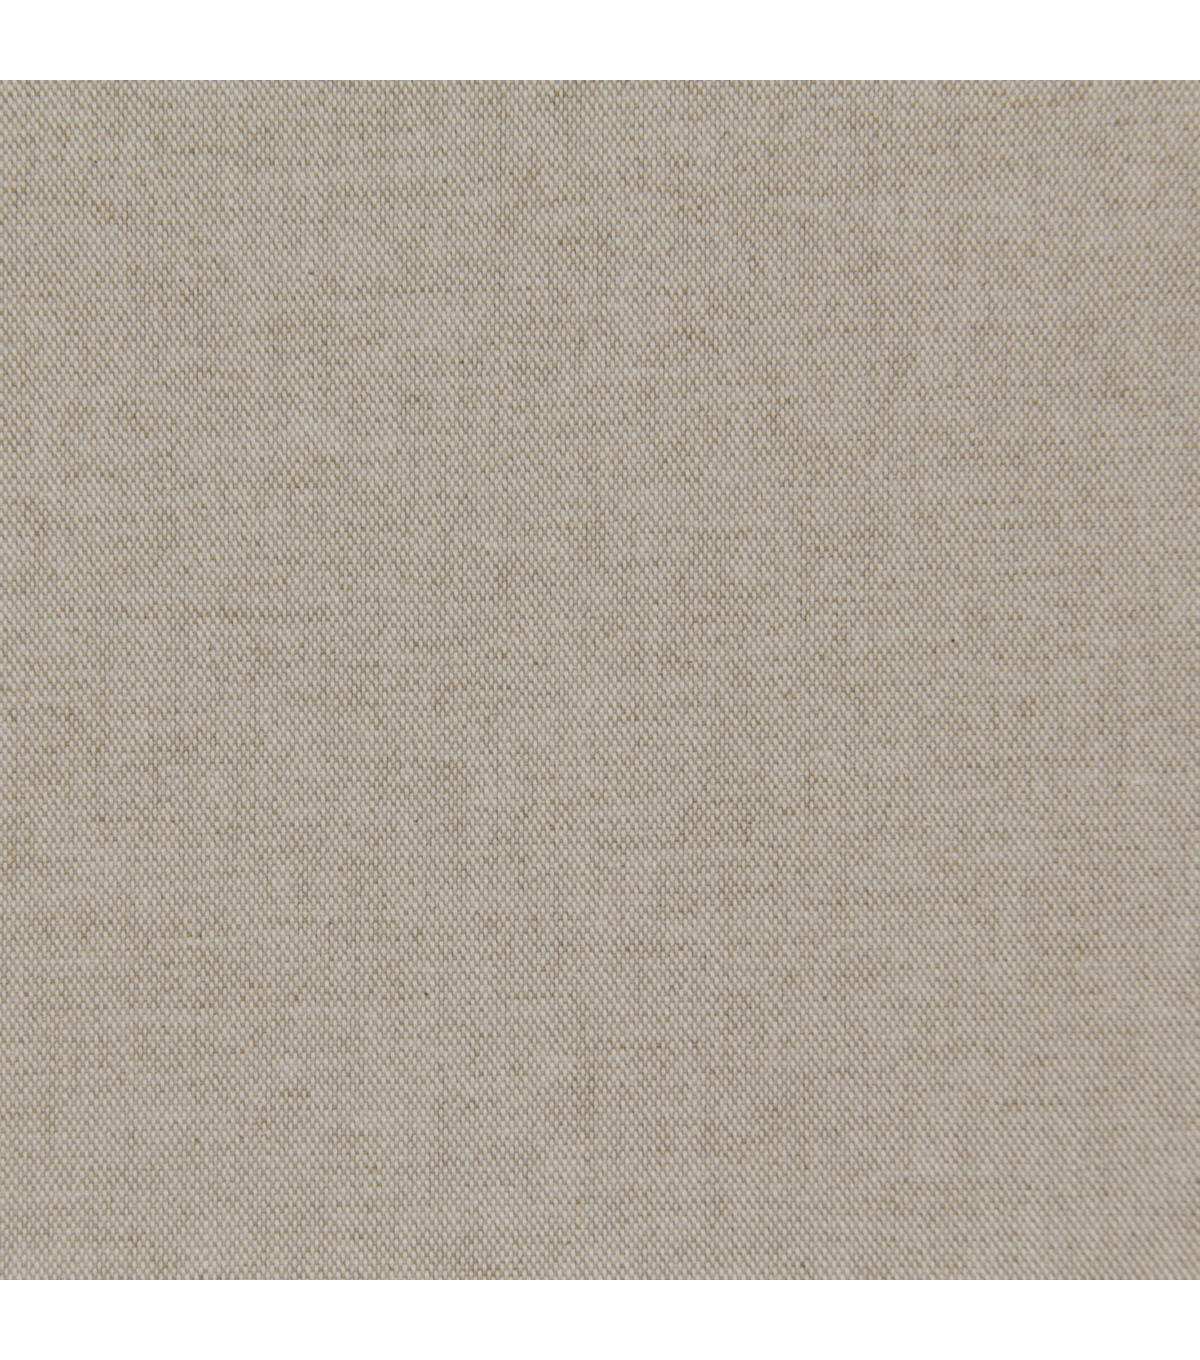 Home Decor 8\u0022x8\u0022 Fabric Swatch-Simply Natural / Linen